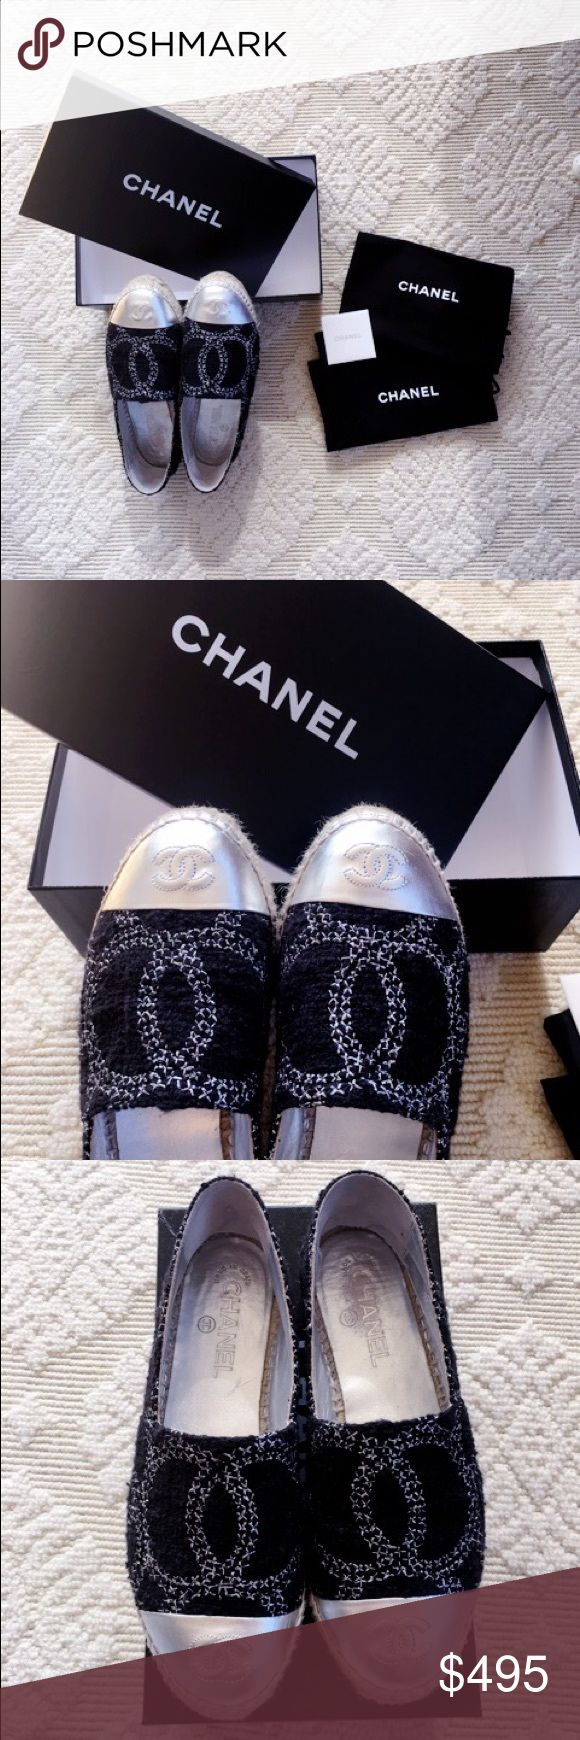 💯 Authentic Chanel Tweed / Silver Espadrilles Moving Sale! 💯 Authentic Chanel Signature Tweed / Silver Captoe with Logo Espadrilles! pretty much in pristine condition. Please see last photo for imperfection, there is minor scratch on the captoe, and a tiny rip inside the shoe ( can be easily fixed at Chanel or any shoe store) . Size 37 . Sold out in stores. Item selling on eBay for $799 plus 25 dollars shipping. Please don't send me low ball offers. Thank you :) CHANEL Shoes Espadrilles